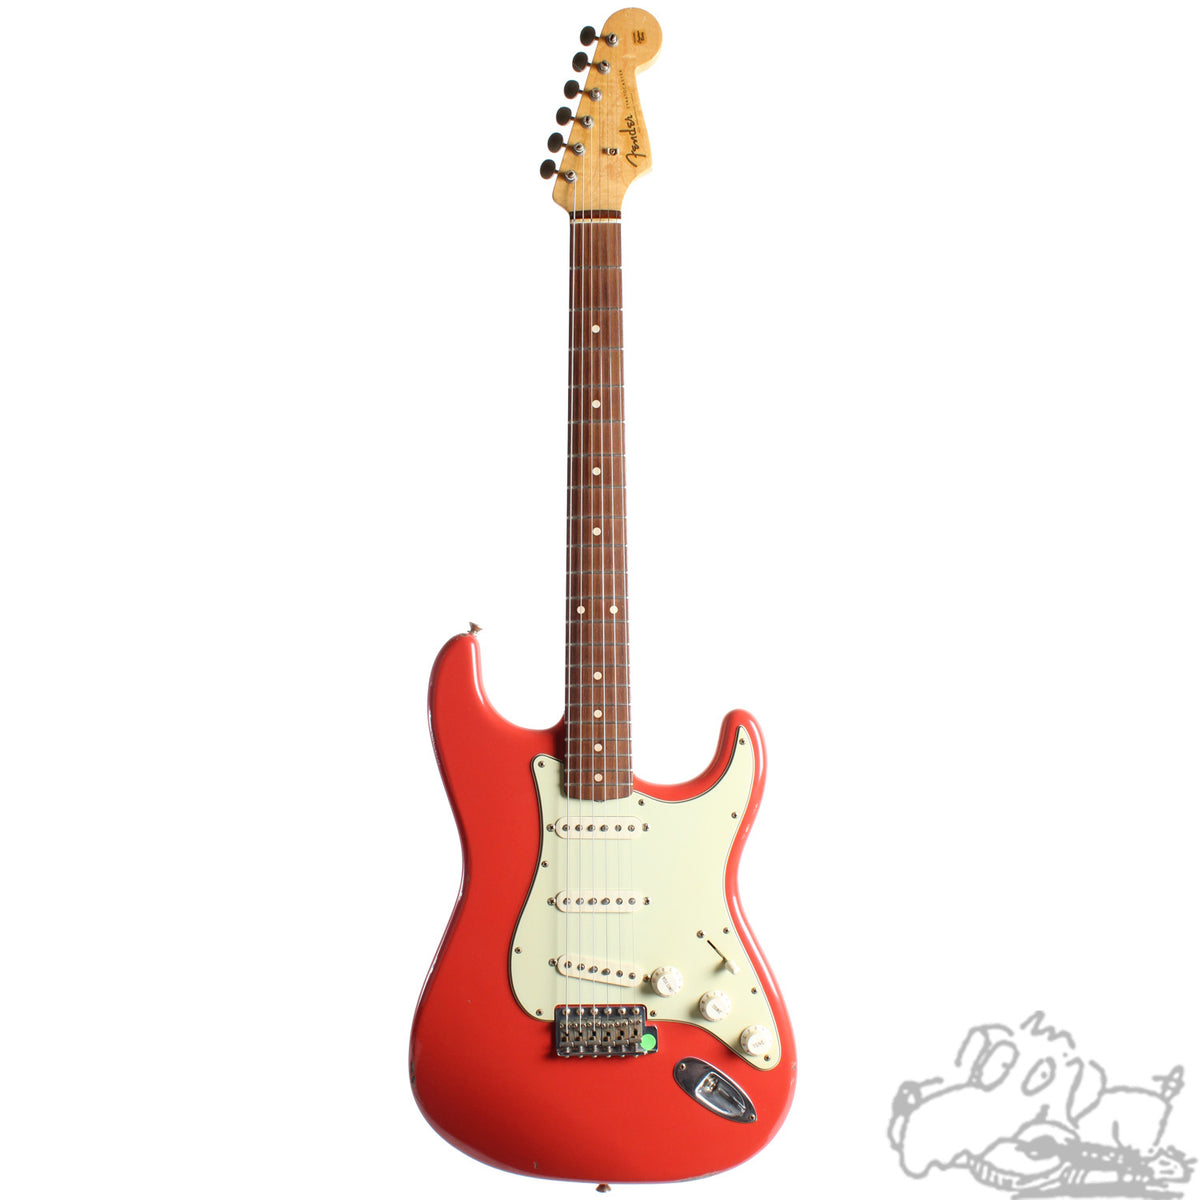 2004 Fender Custom Shop '60 Stratocaster Relic, Fiesta Red